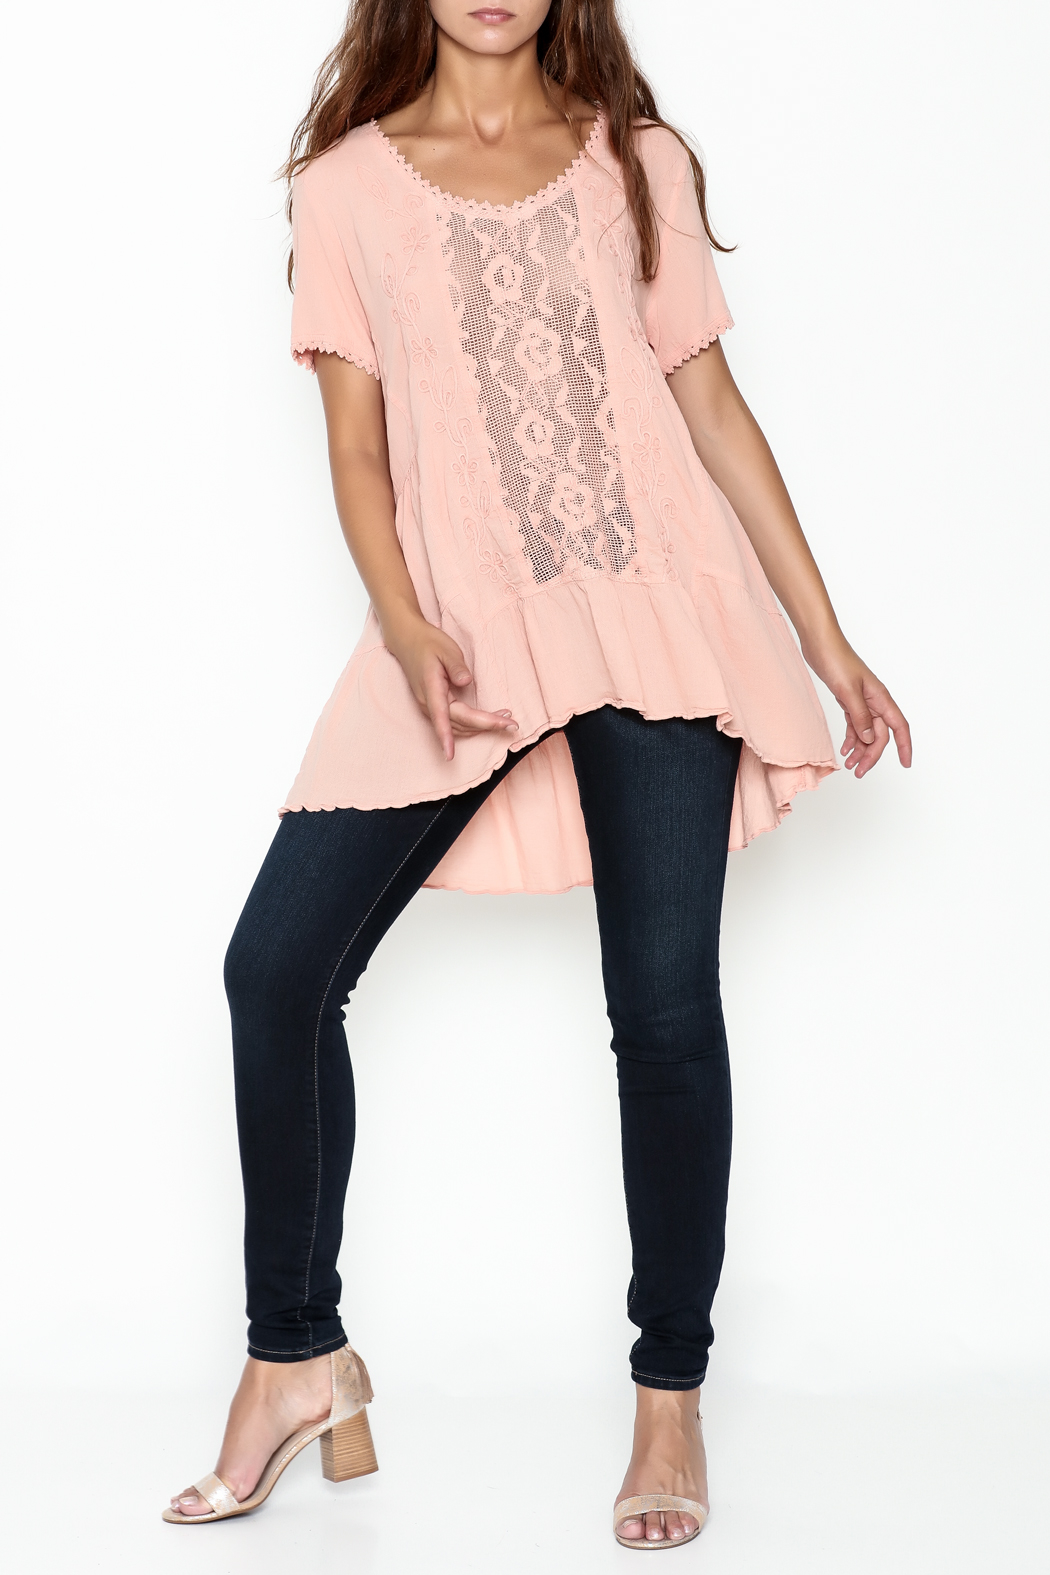 Gretty Zuegar High Low Tunic - Side Cropped Image